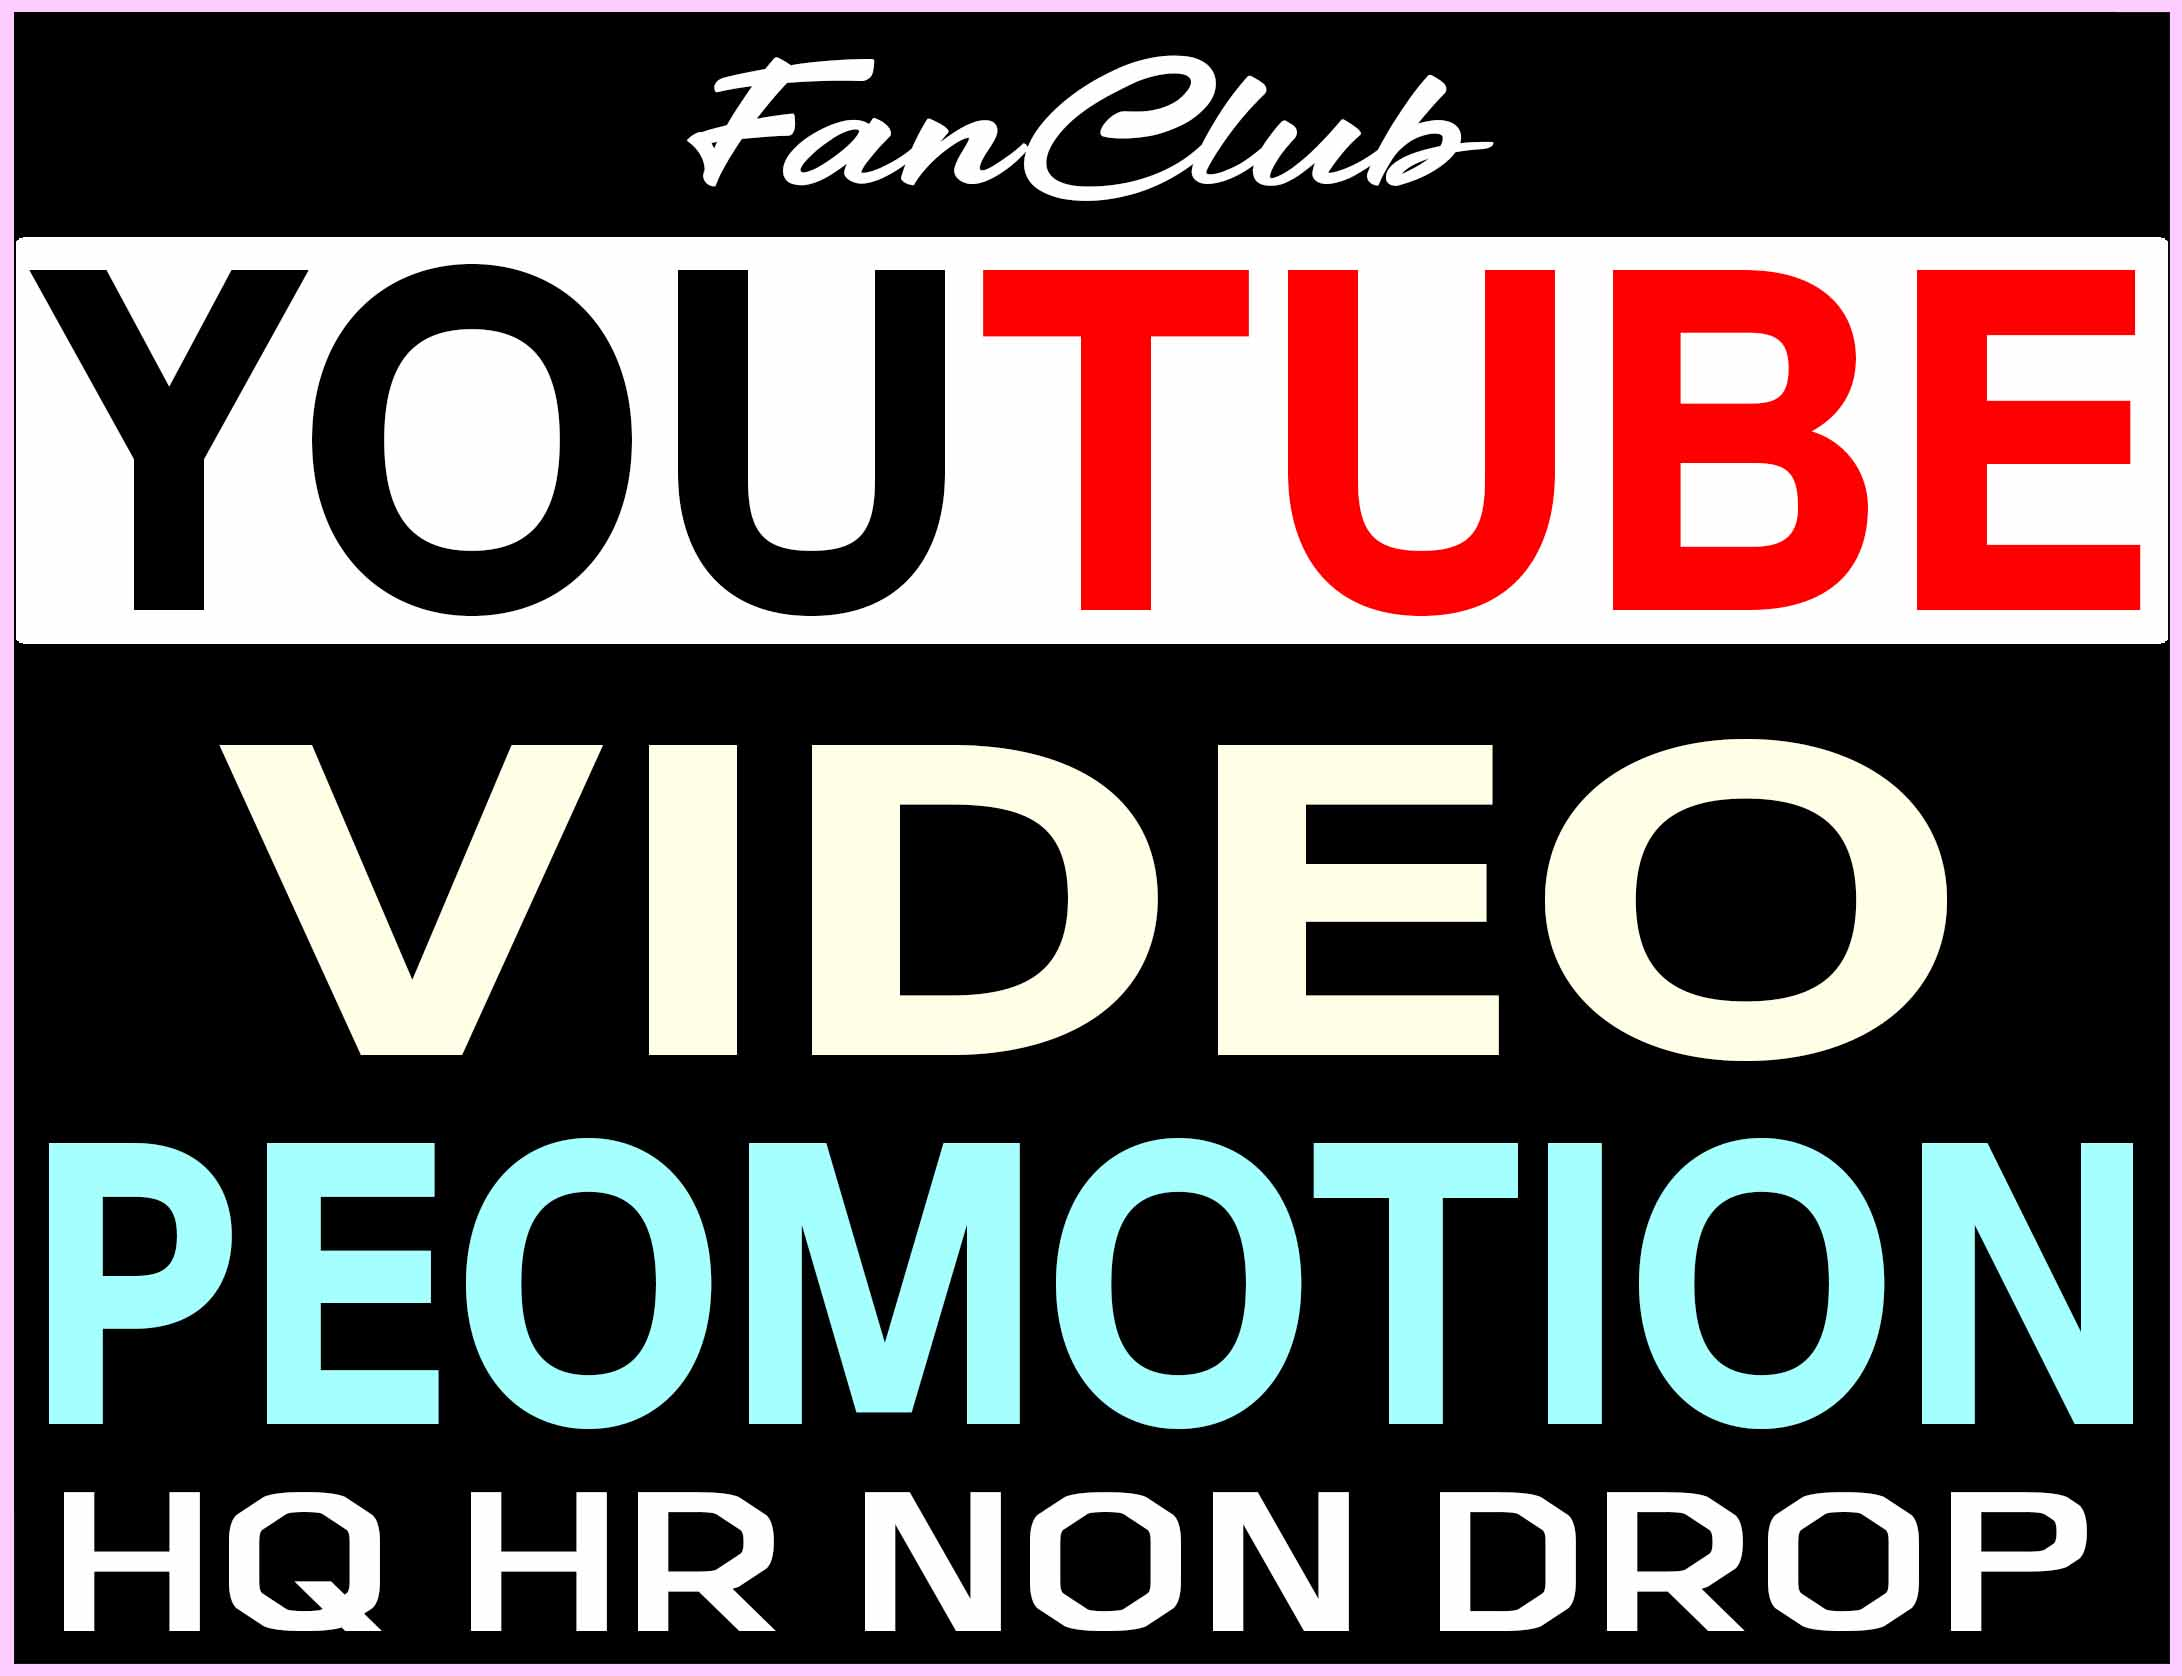 YOUTUBE VIDEO PROMOTION REAL ORGANIC AND SUPER FAST WITH NON DROP GUARANTEED